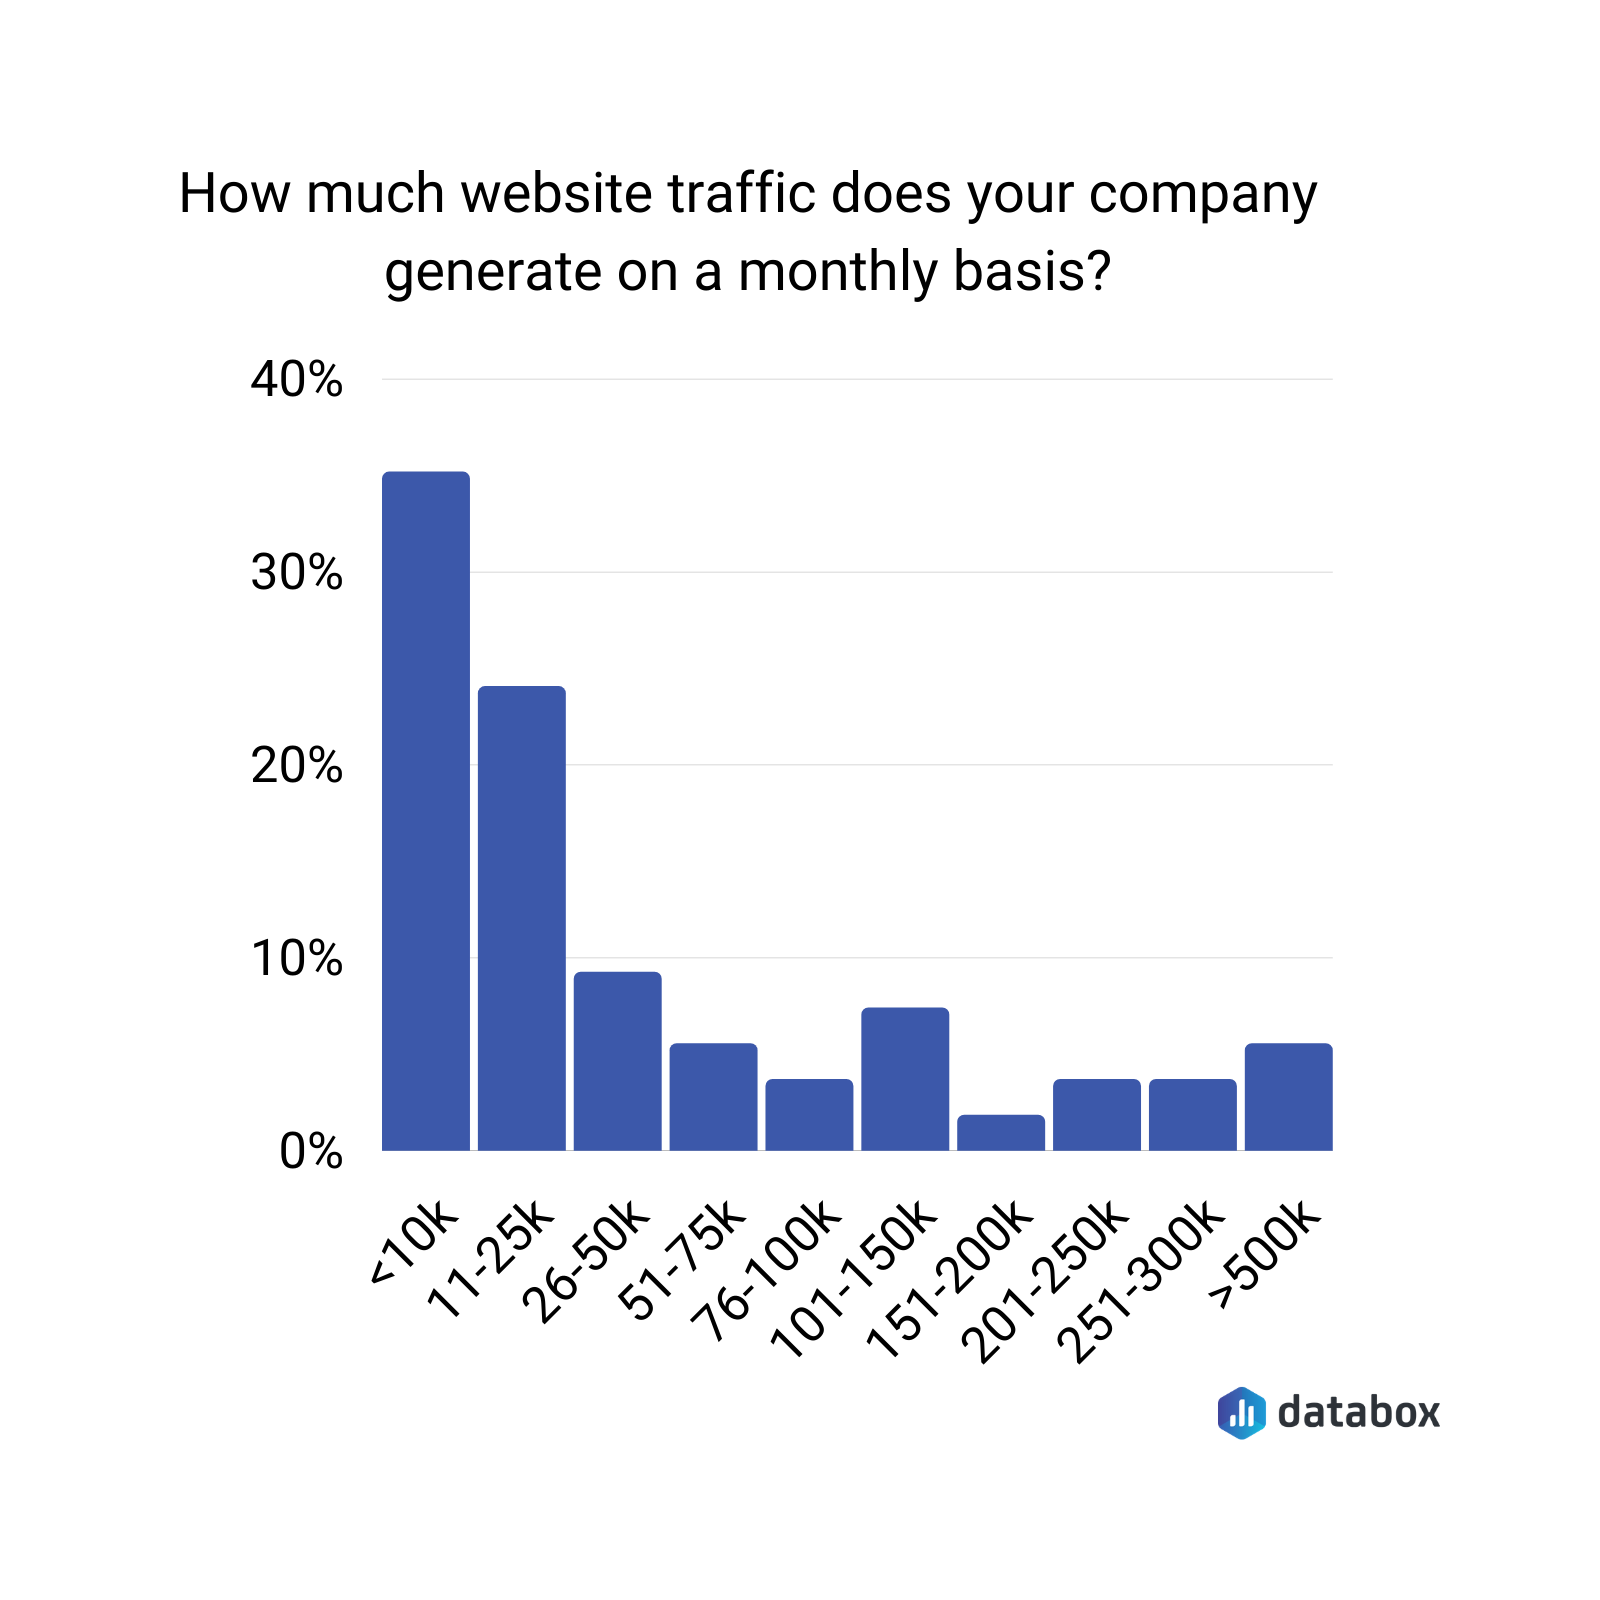 how much website traffic does your company generate on a monthly basis